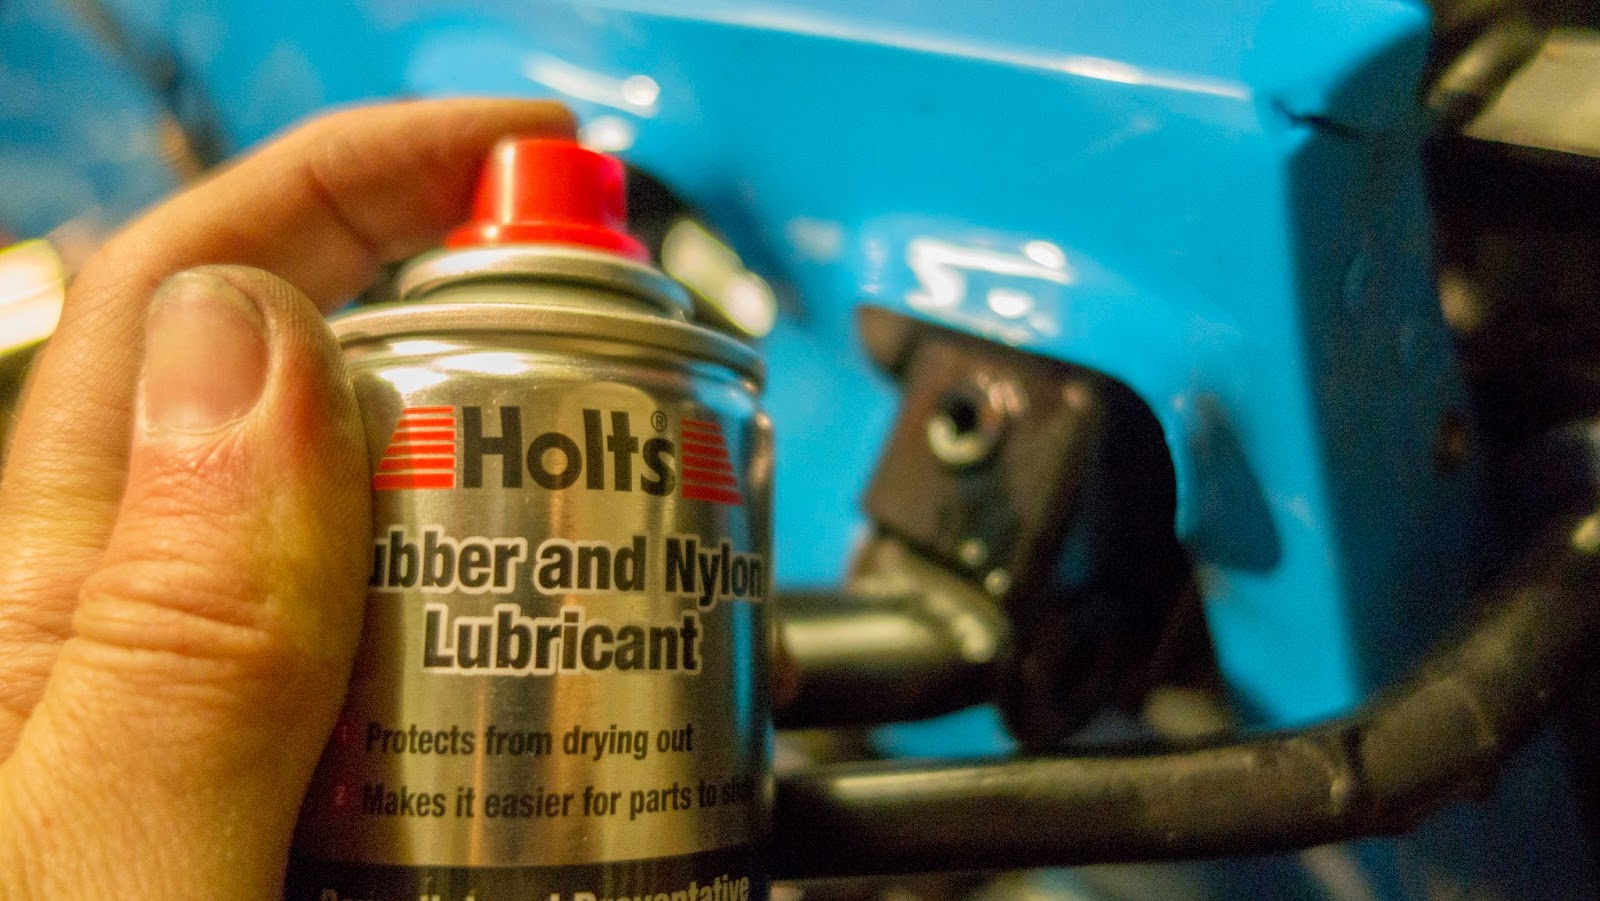 Apply a little Holts RL2R to the grommet in the upper wishbone mount